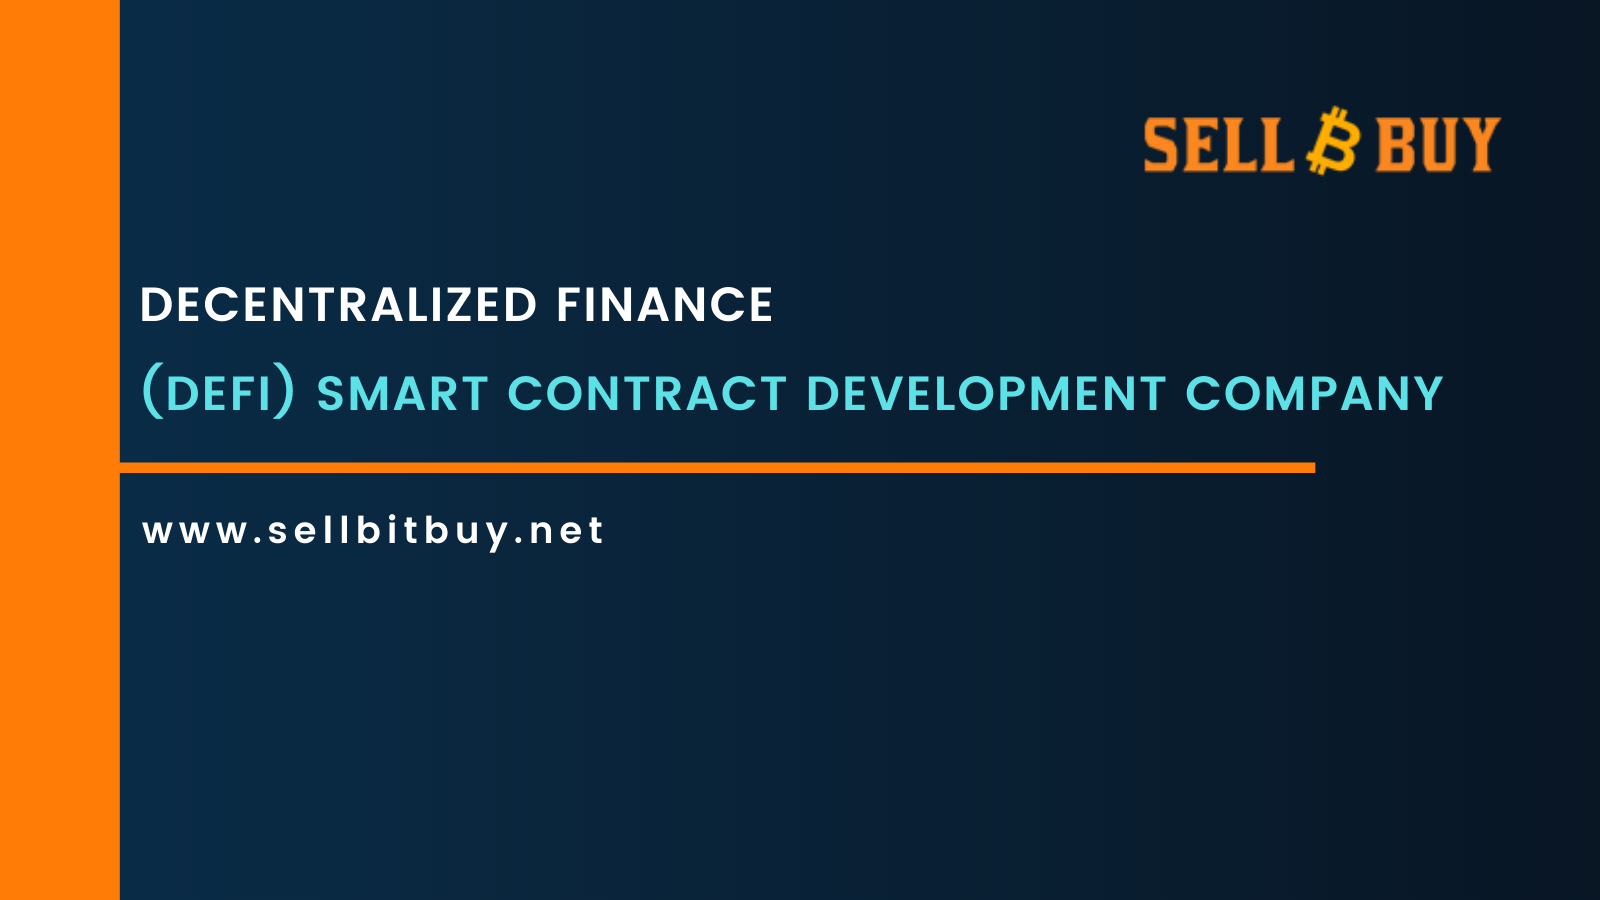 DeFi Smart Contract Development Company